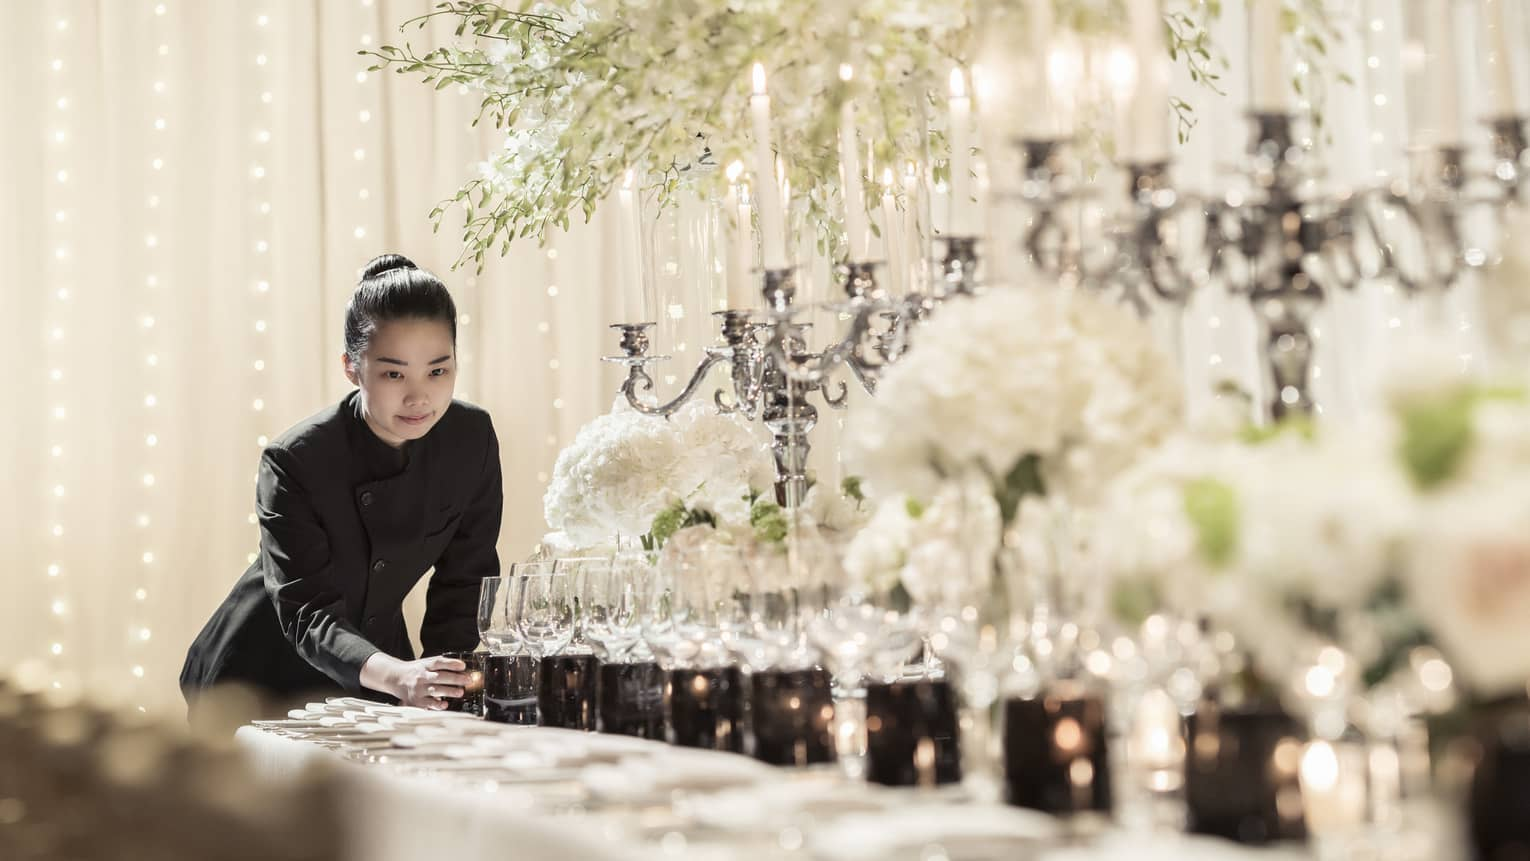 Hotel staff places candle at end of long formal dining table set with candelabras, sparkling lights